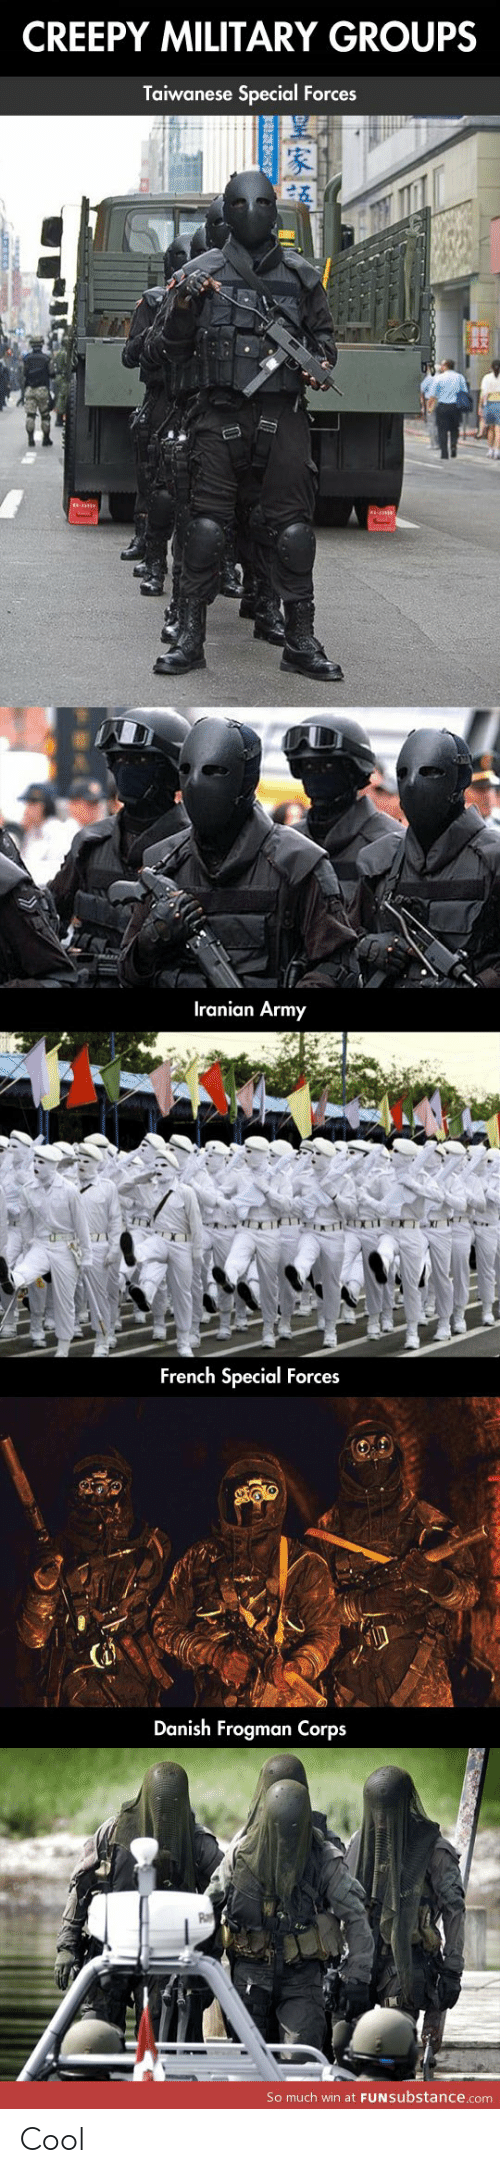 Creepy, Army, and Cool: CREEPY MILITARY GROUPS  Taiwanese Special Forces  Iranian Army  French Special Forces  Danish Frogman Corps  So much win at FUNSubstance.com Cool